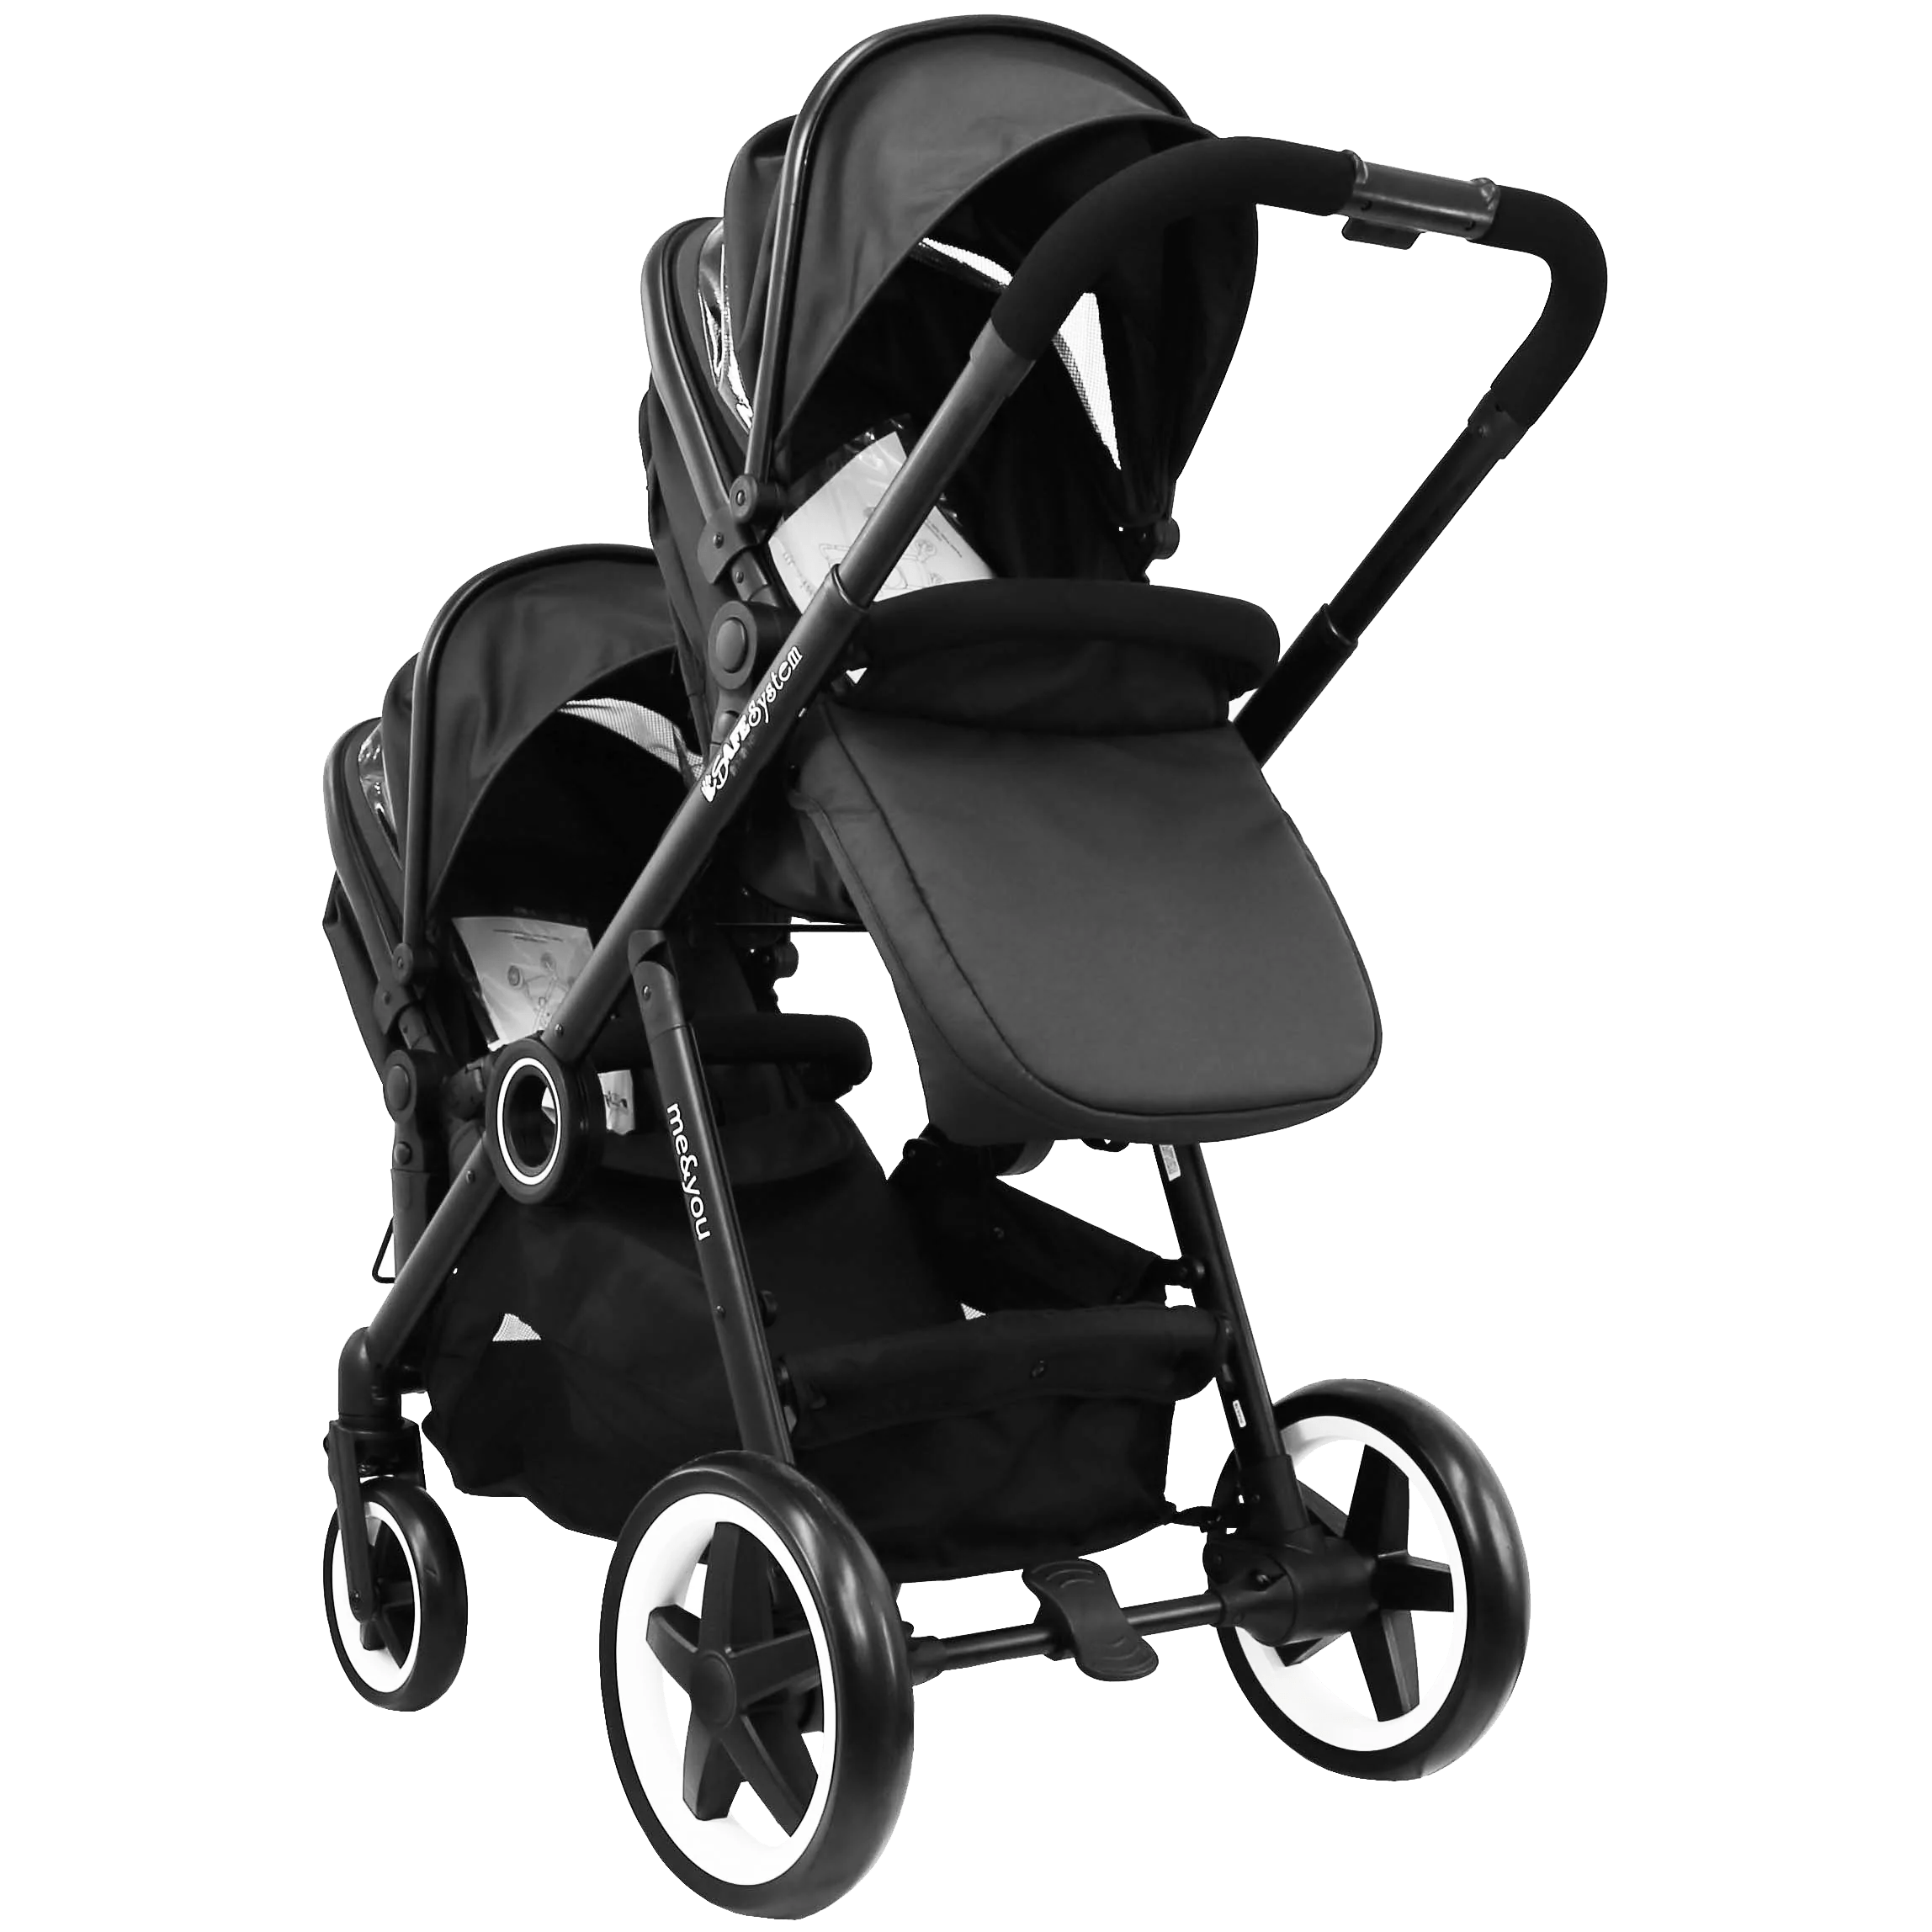 Baby Buggy Mercedes Sale Now On Save Up To 50 Luxury Baby Prducts By Isafe